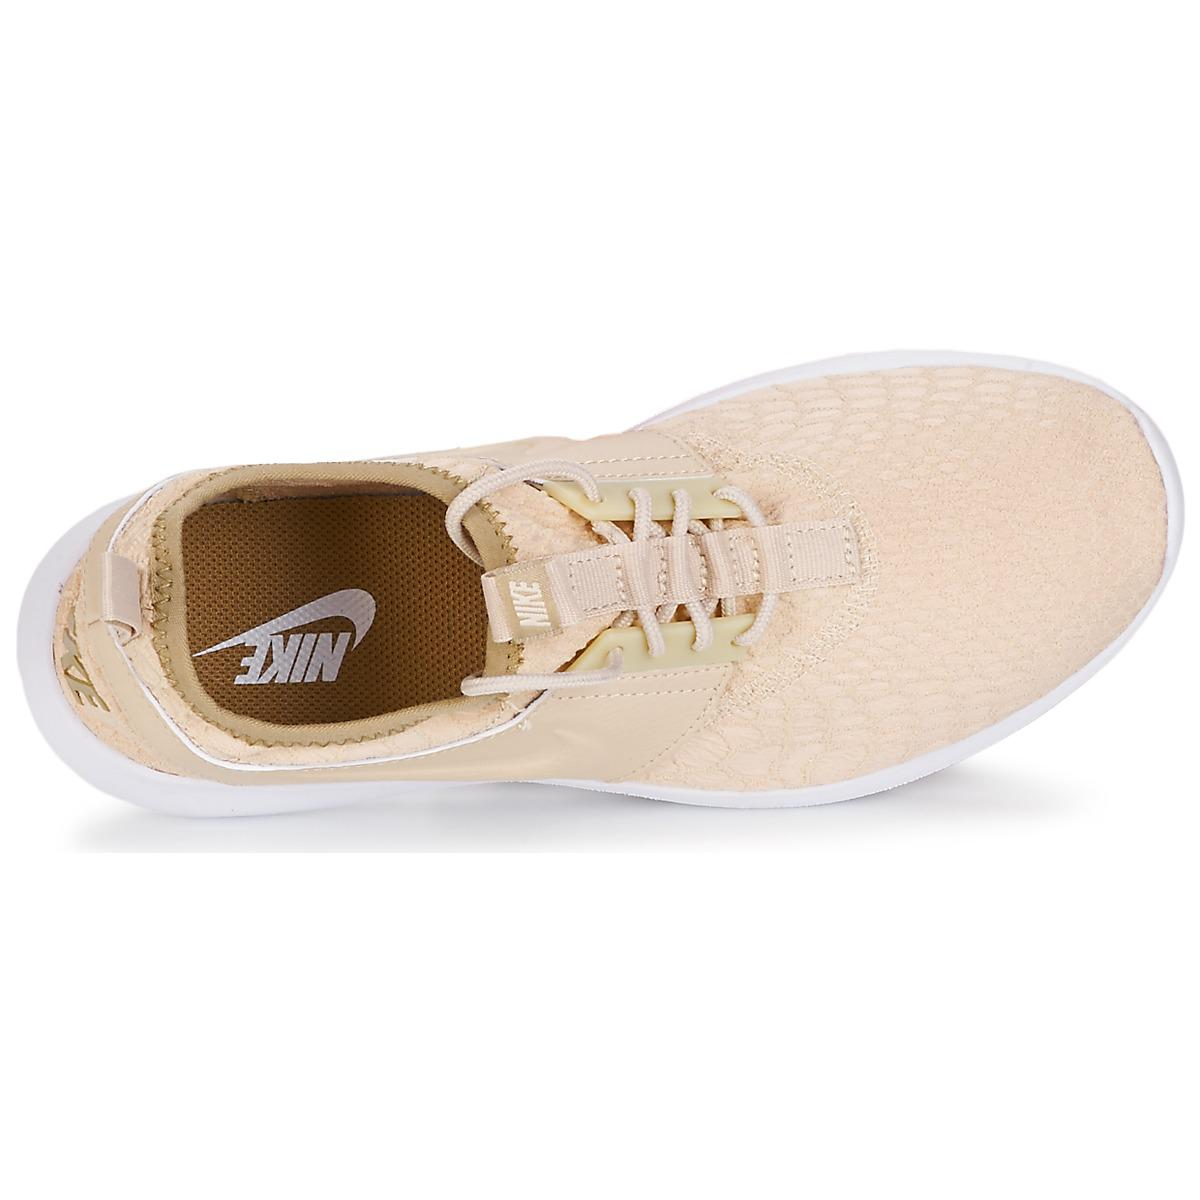 Nike Synthetic Juvenate Se W Shoes (trainers) in Beige (Natural)